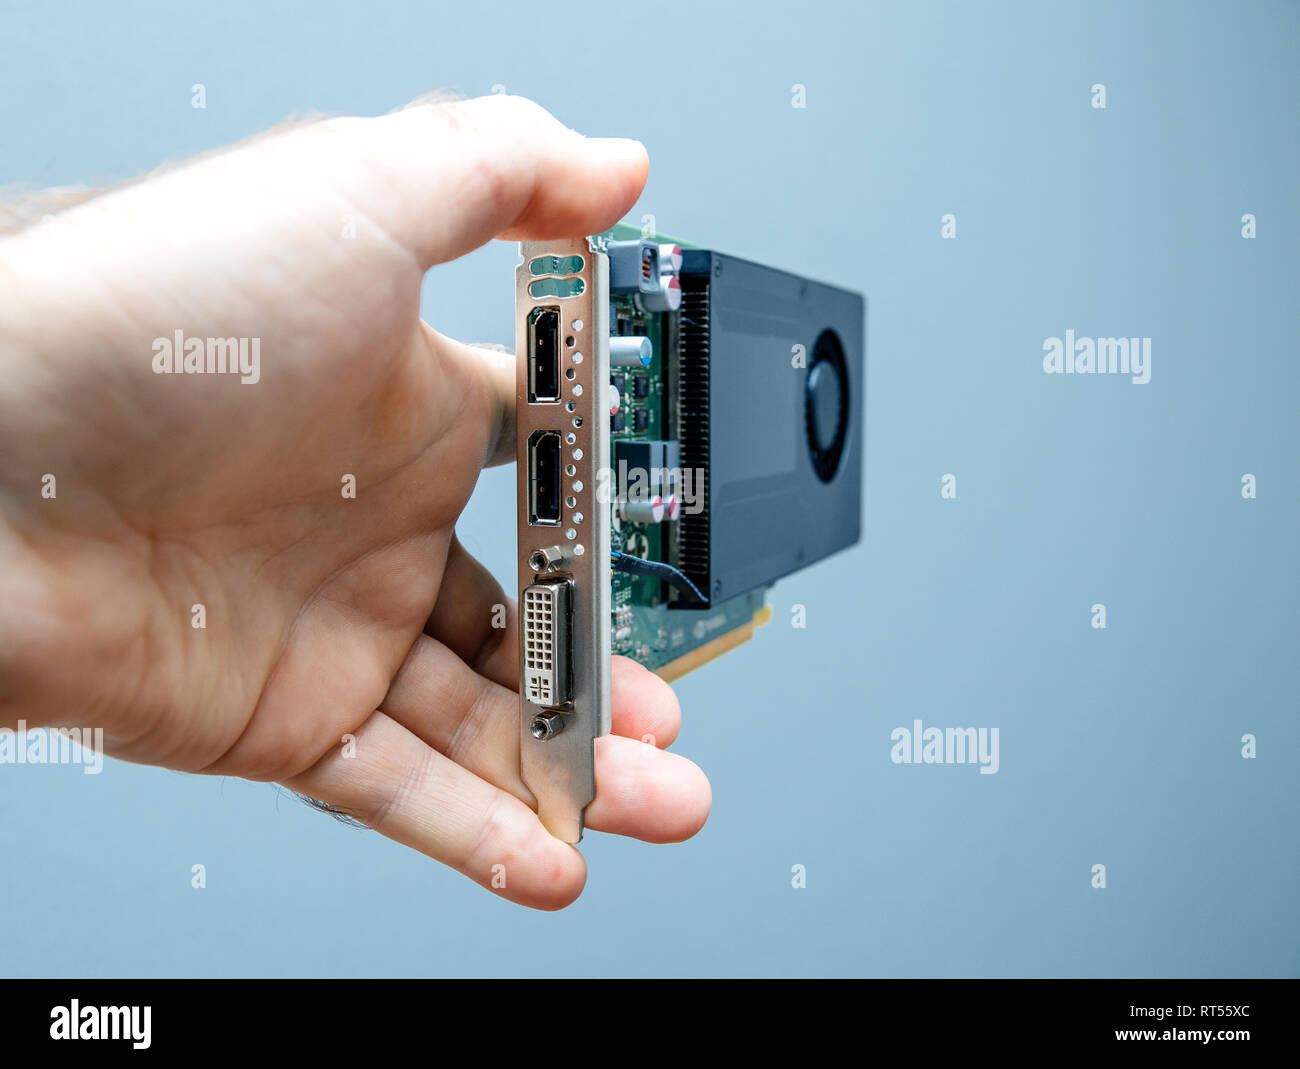 Man holding against gray background powerful GPU video card  used in professional video production in bitcoin cryptocurrency mining - Stock Image